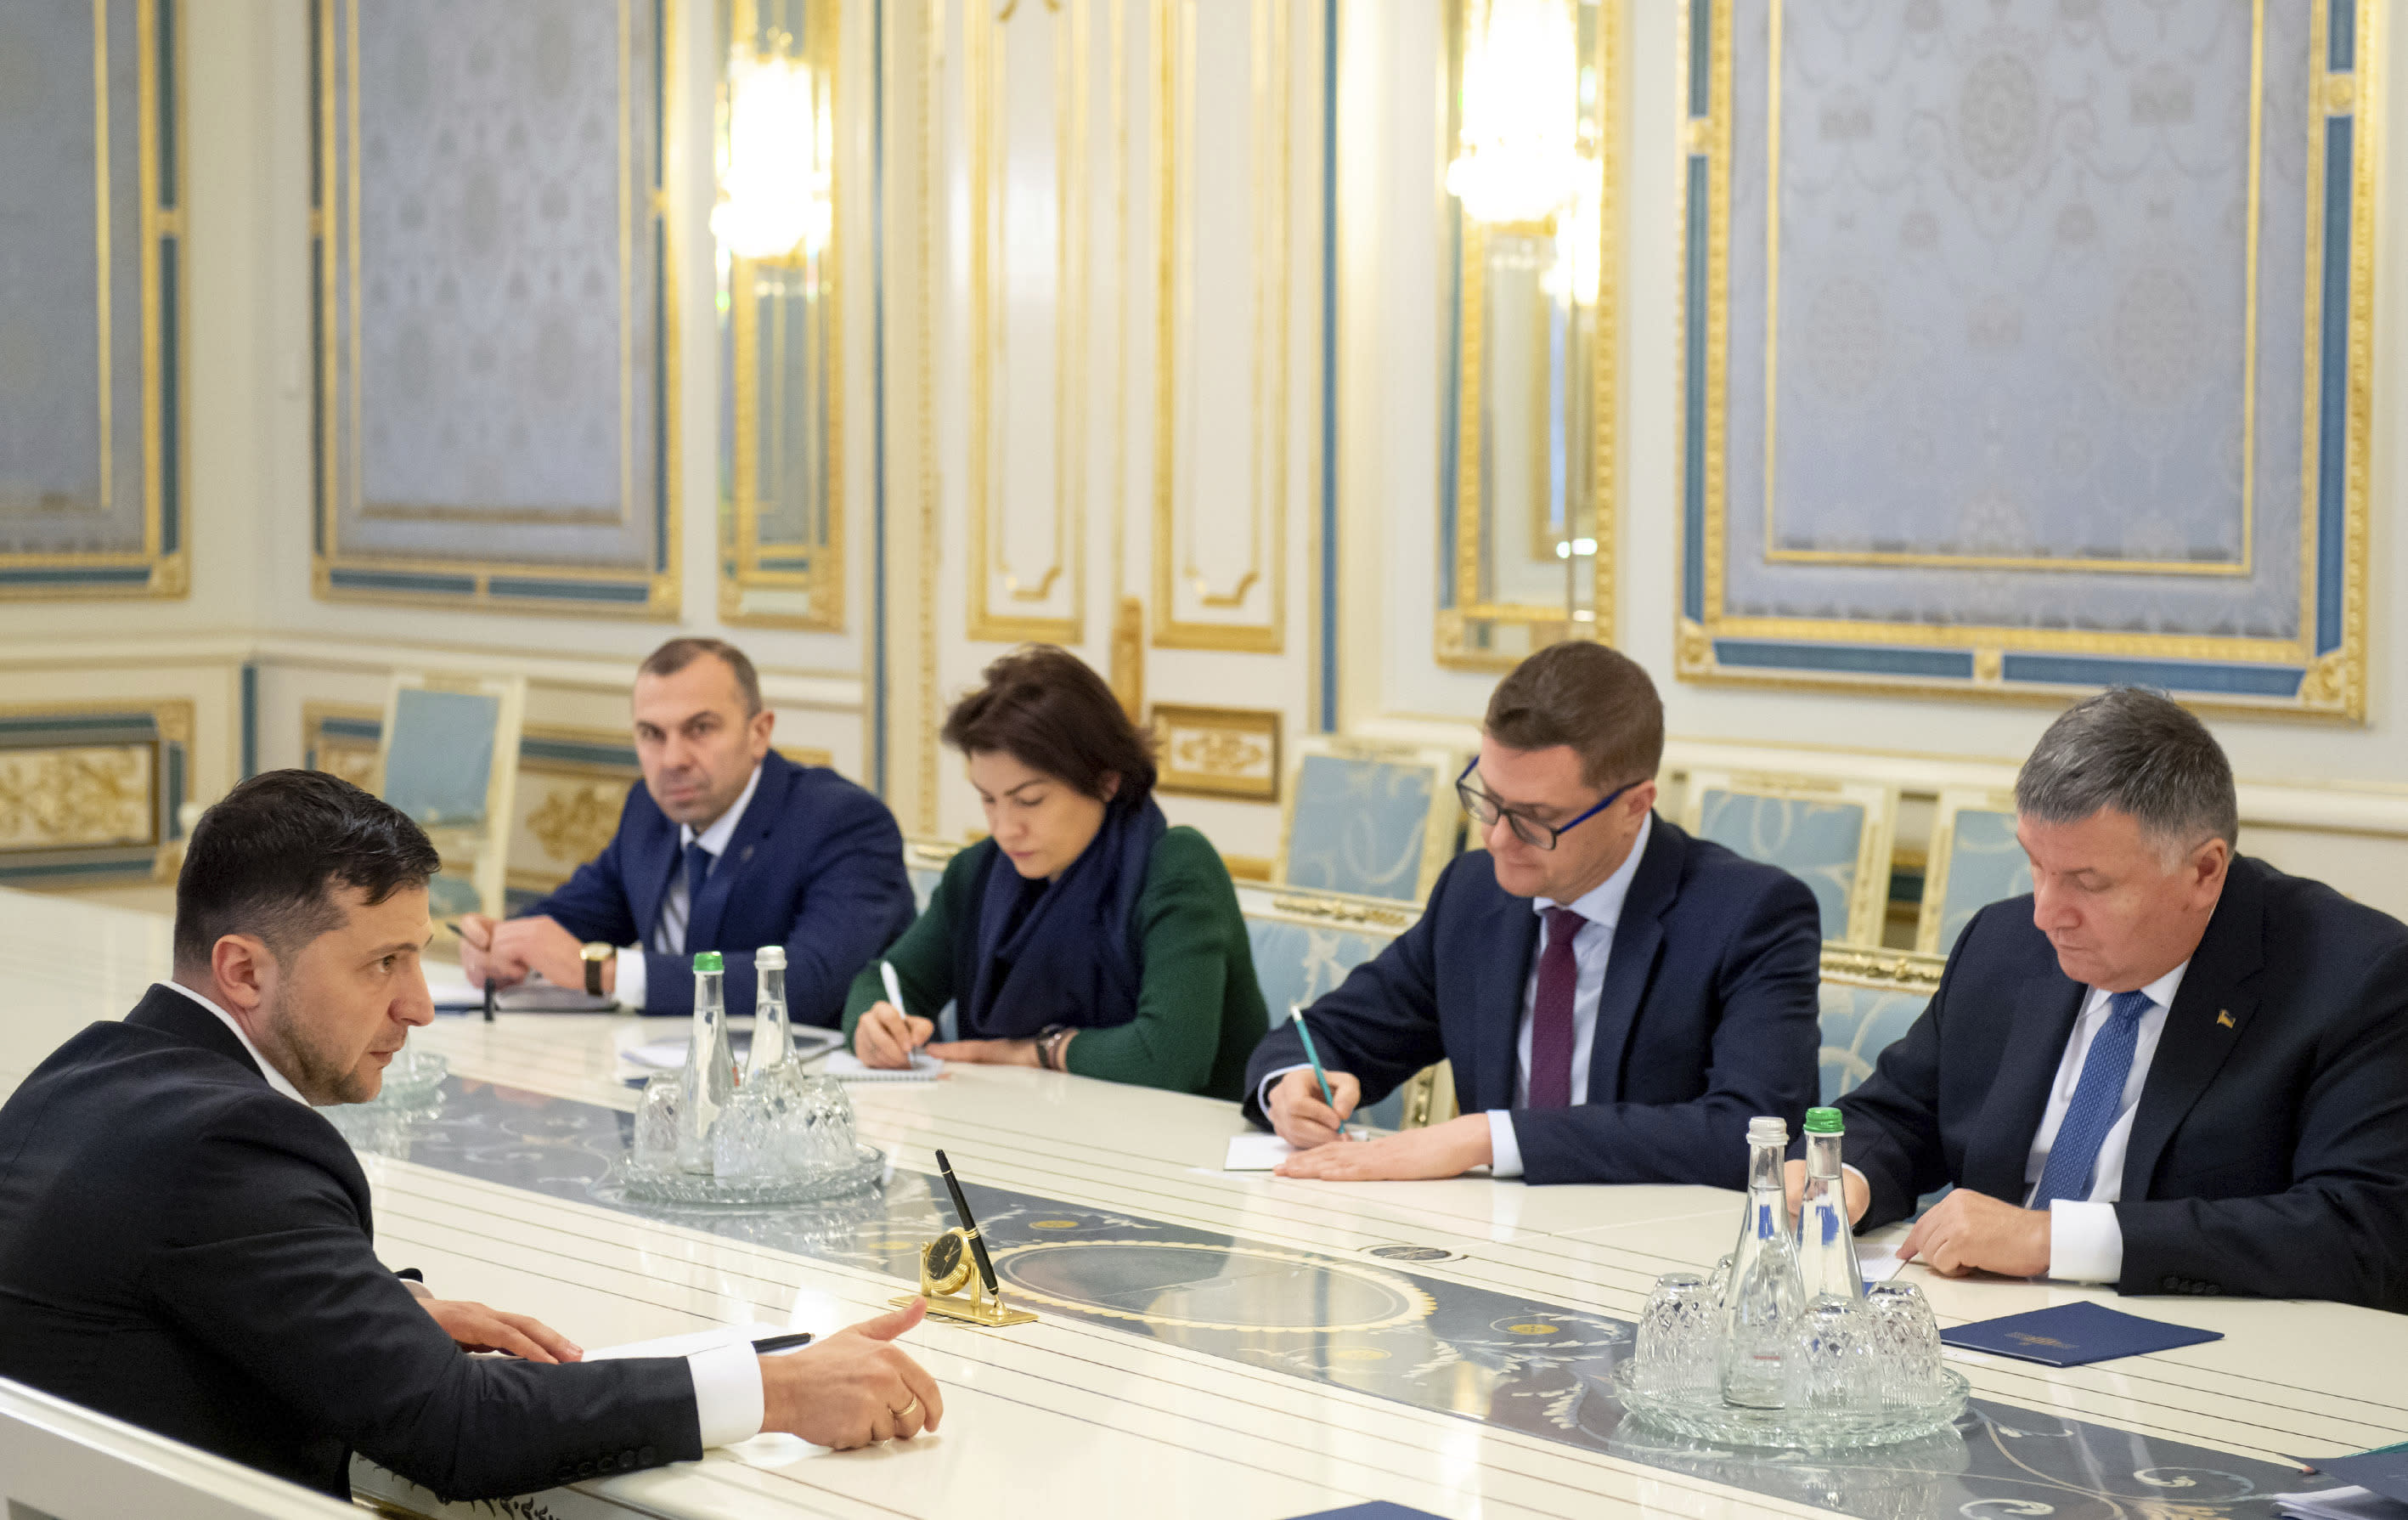 In this photo provided by the Ukrainian Presidential Press Office, Ukrainian President Volodymyr Zelenskiy, left, speaks during a meeting with cabinet members and security officials in Kyiv, Ukraine, Friday, Jan. 17, 2020. Ukraine's prime minister submitted his resignation Friday, days after he was caught on tape saying the country's president knows nothing about the economy. Zelenskiy demanded that the provenance of the tapes be investigated. (Ukrainian Presidential Press Office via AP)